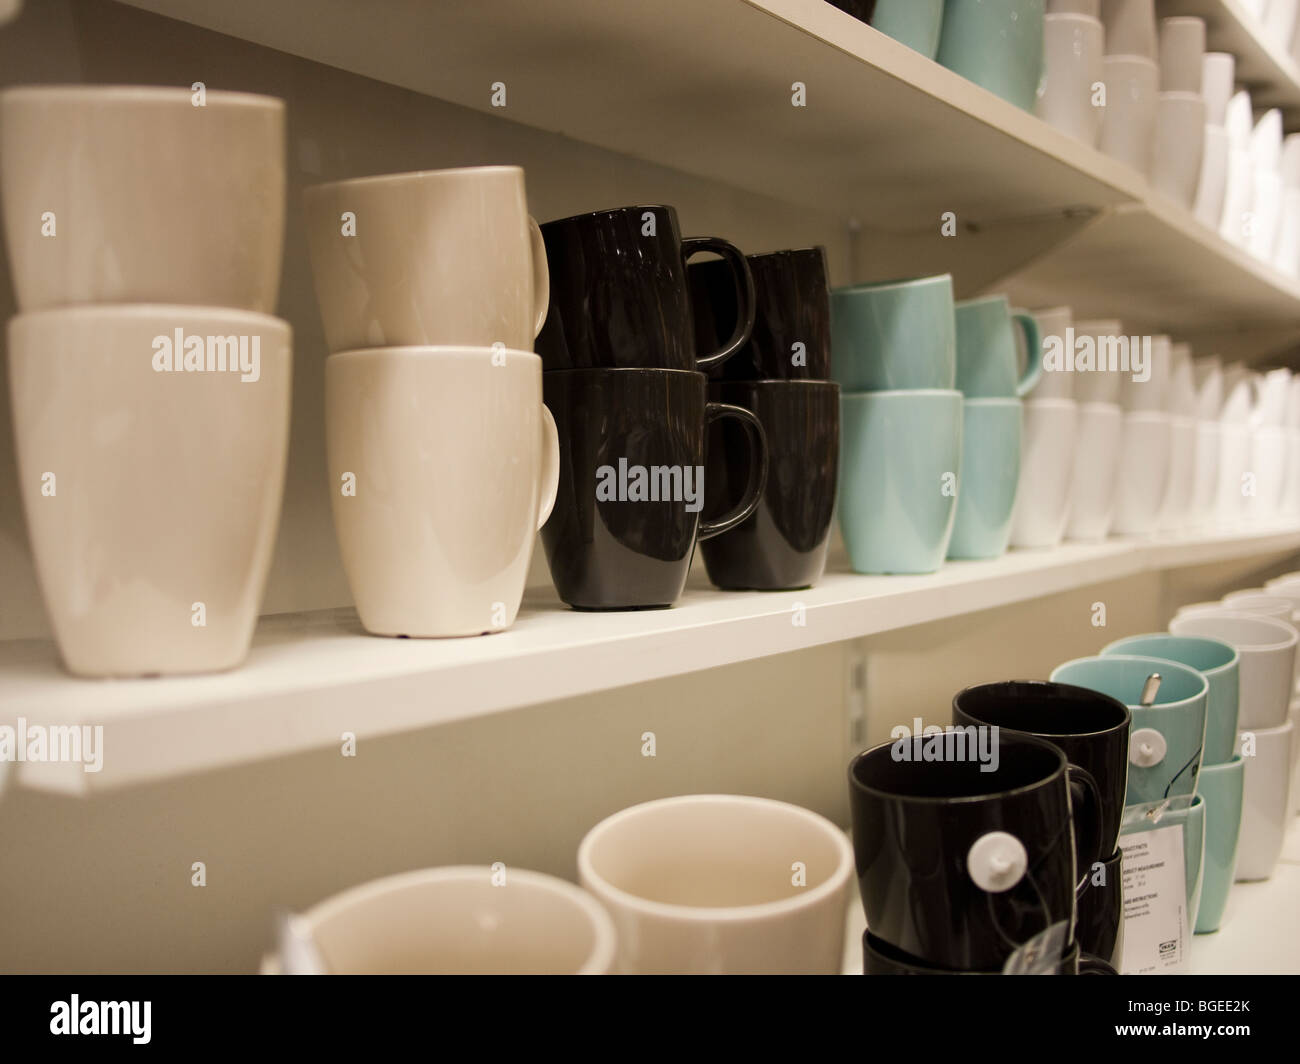 Rows of coloured cups on shelves - Stock Image